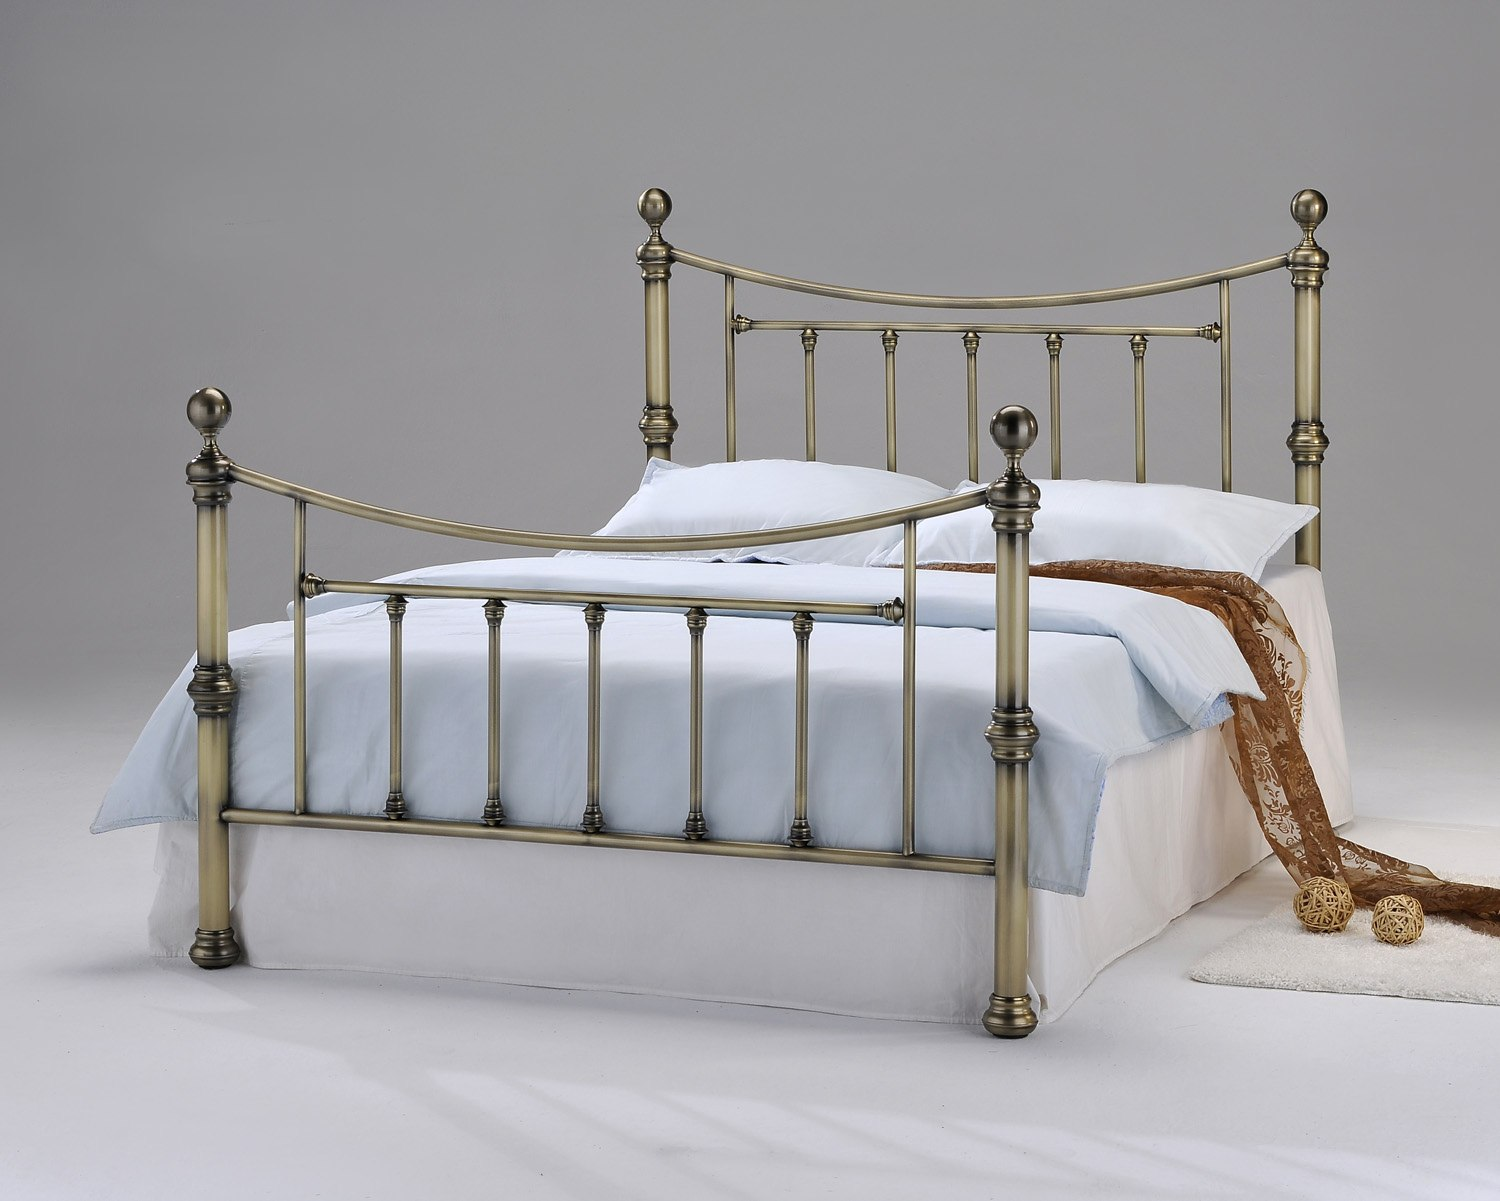 Ameretto metal bed frame Available from the World of Beds, Askern, Doncaster, South Yorkshire